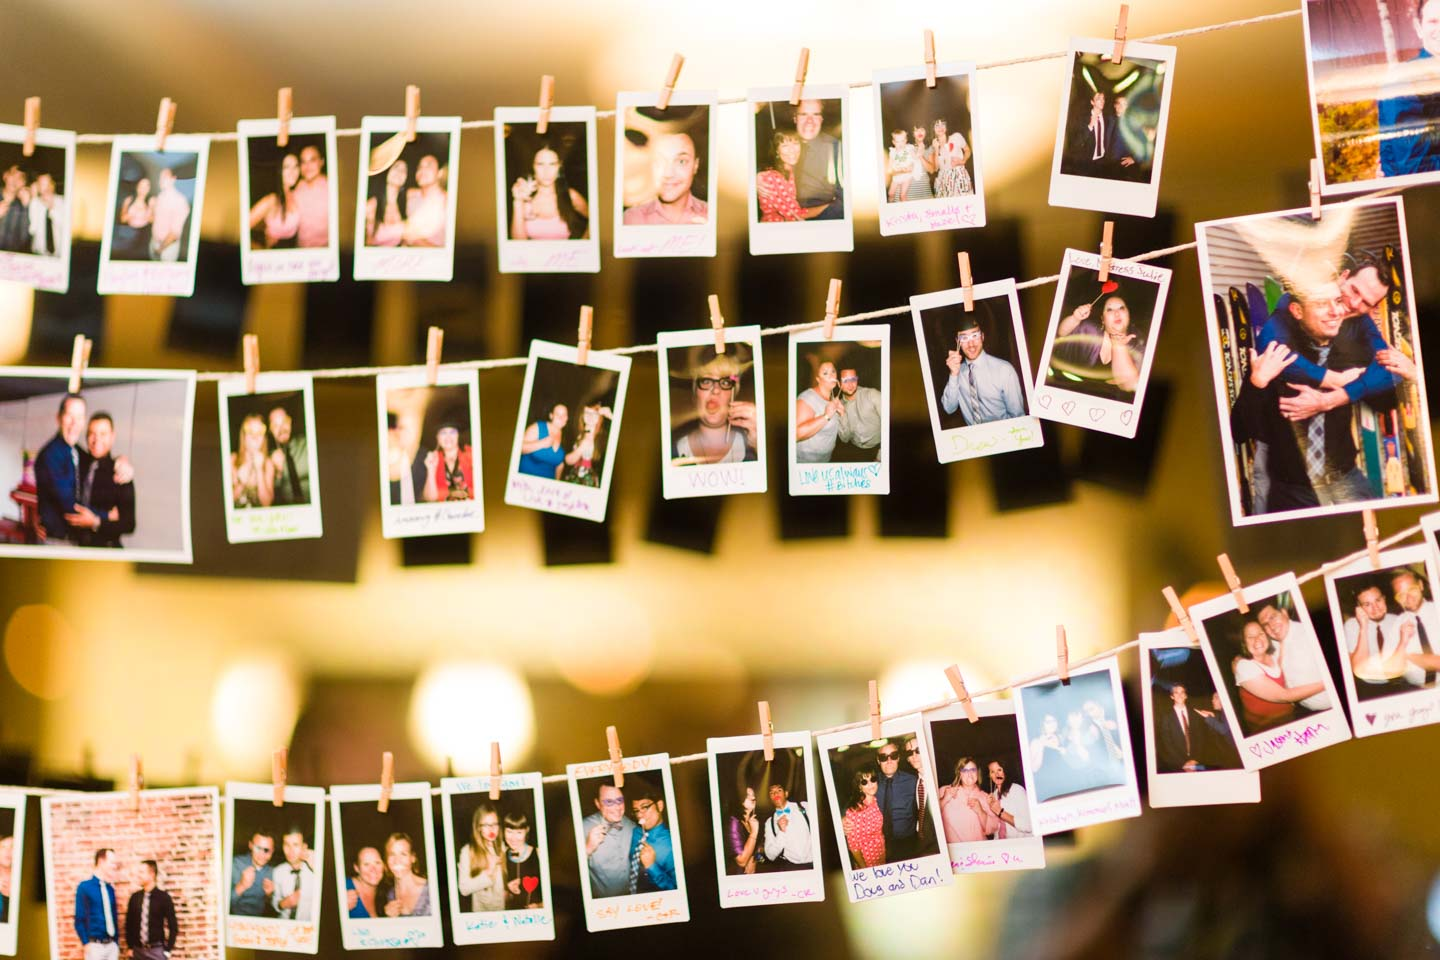 Wedding guests were asked to dress up and get their photo created with a Fuji Instax